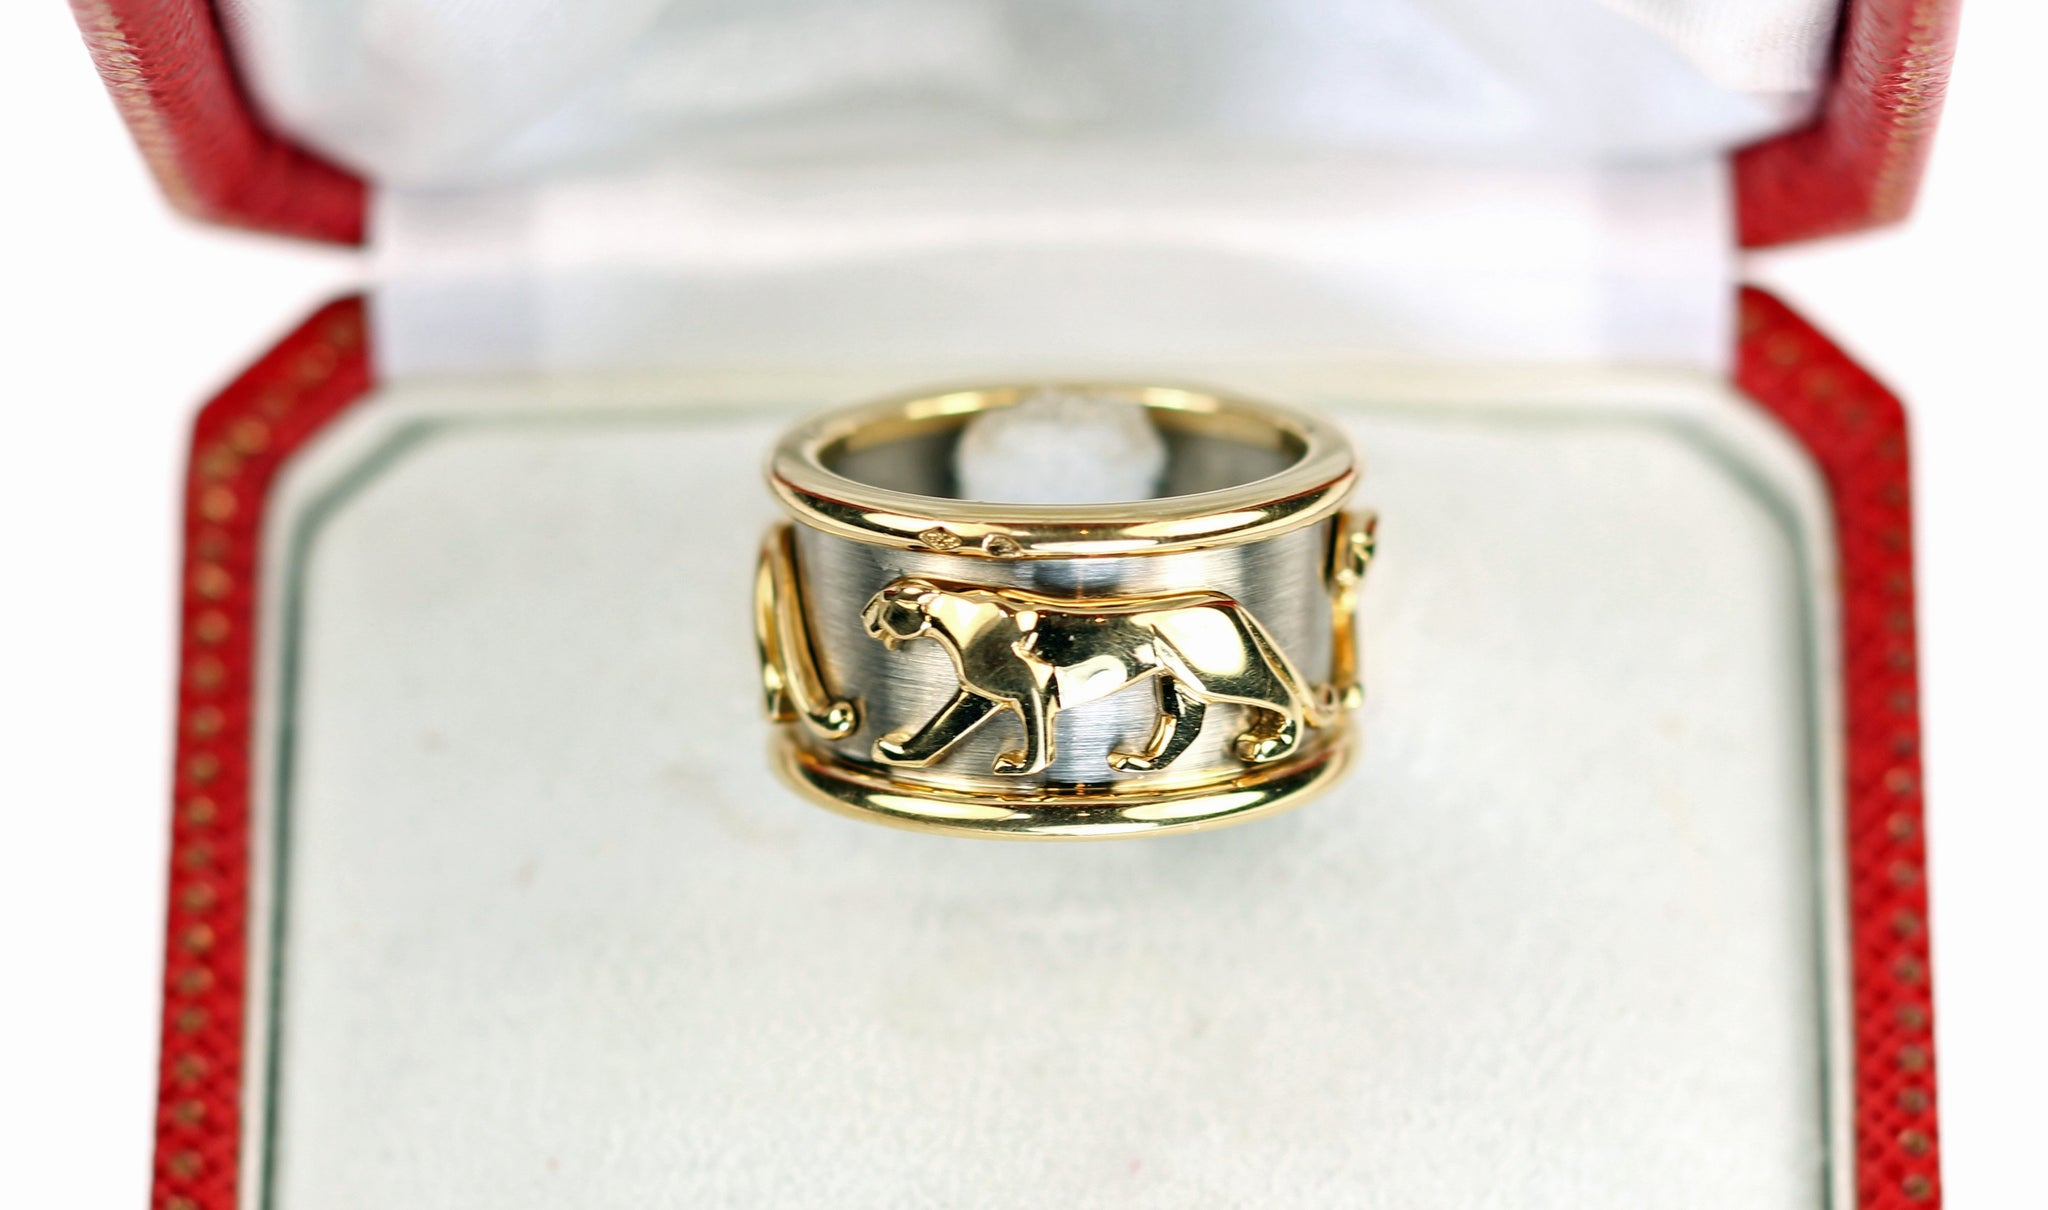 Vintage Cartier Panther Ring, SALE, SOLD